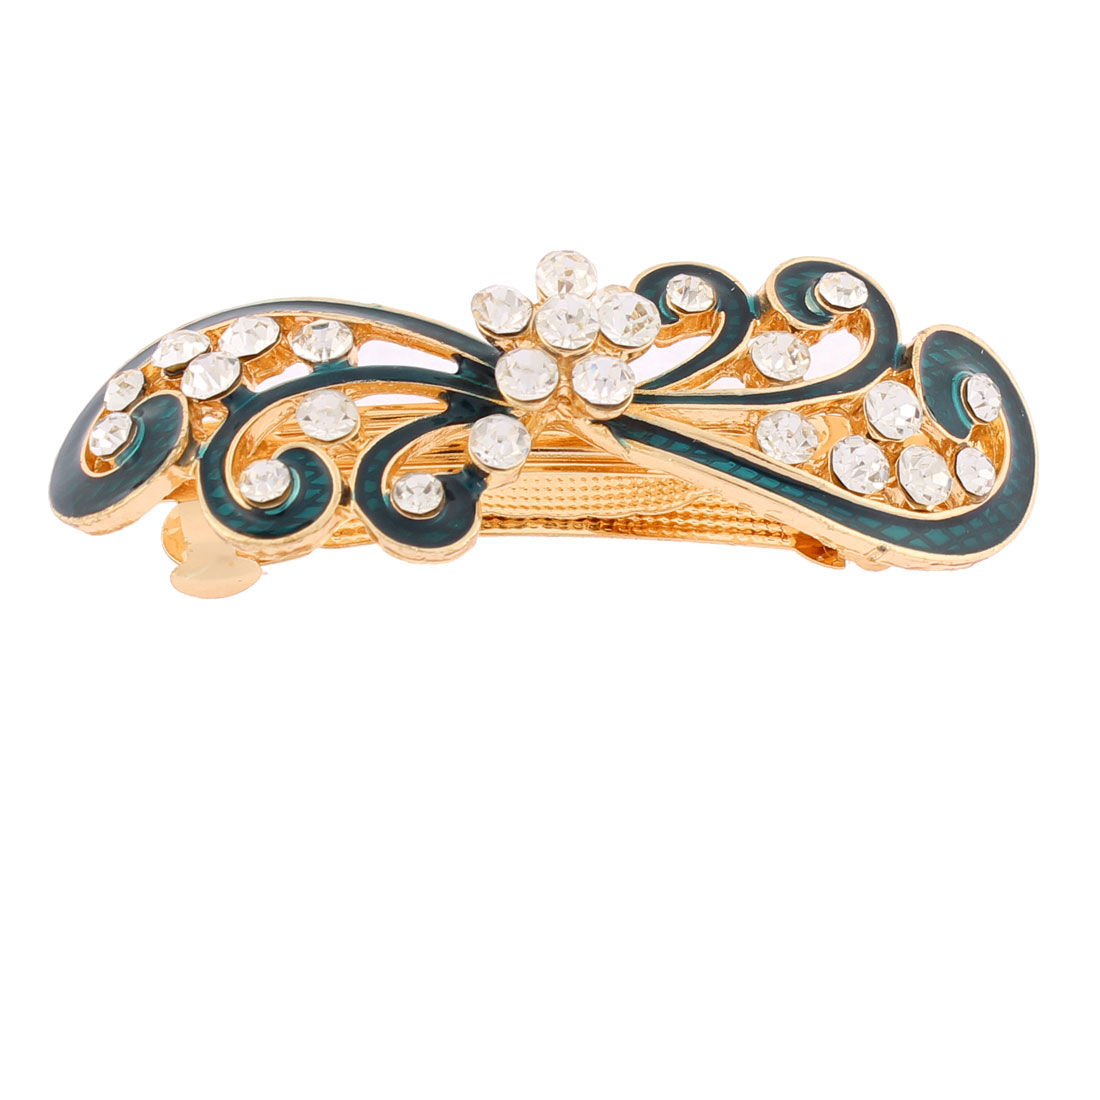 Women Plastic Rhinestones Inlaid Green Floral Accent French Barrette Style Metal Hair Clip Hairpin Decor Gold Tone